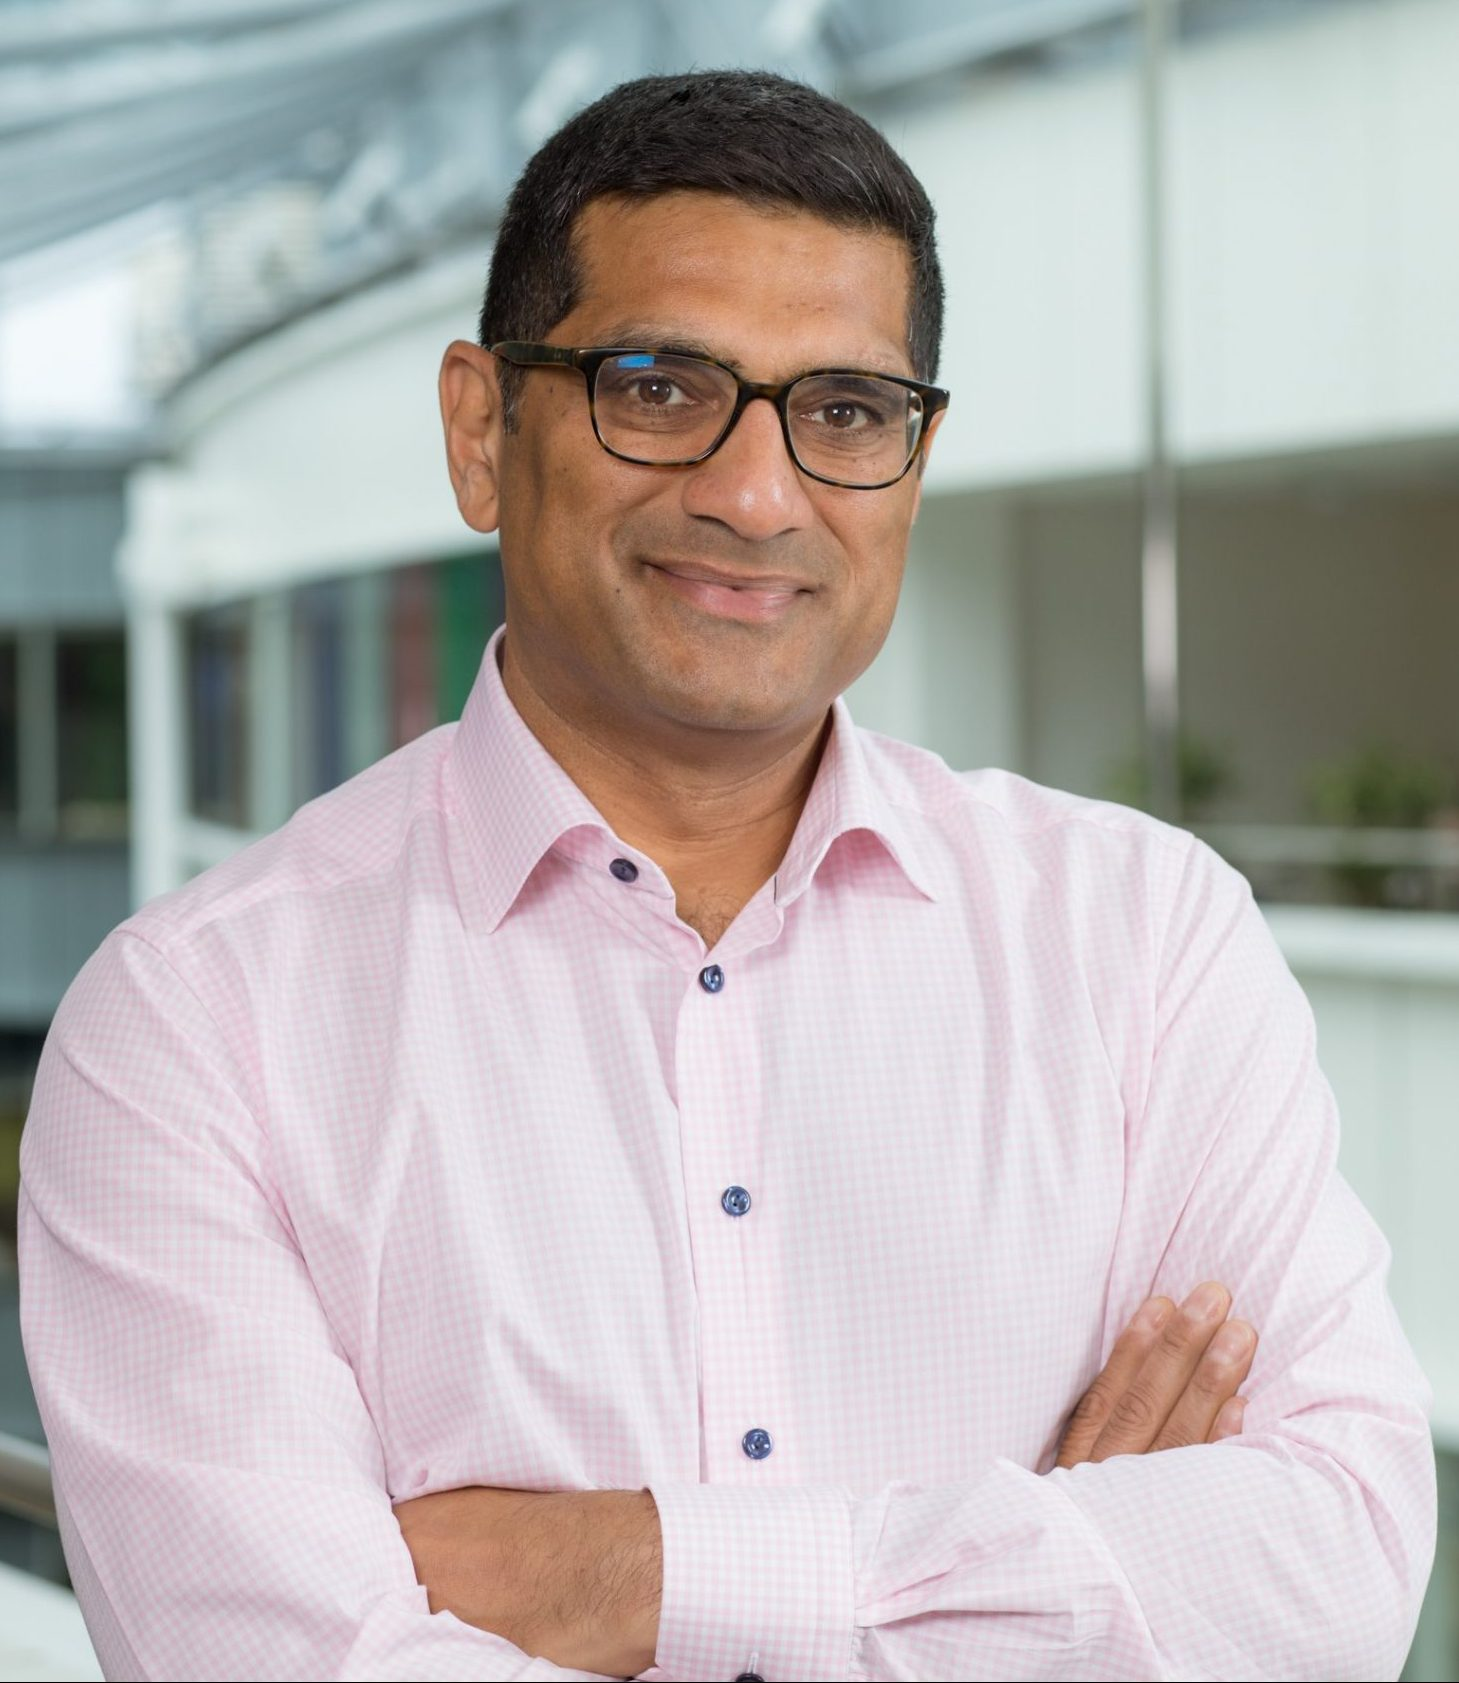 Rare Disease Week 2021 – Interview with Dr. Ravi Rao, Head of Research & Development, Chief Medical Officer at Sobi